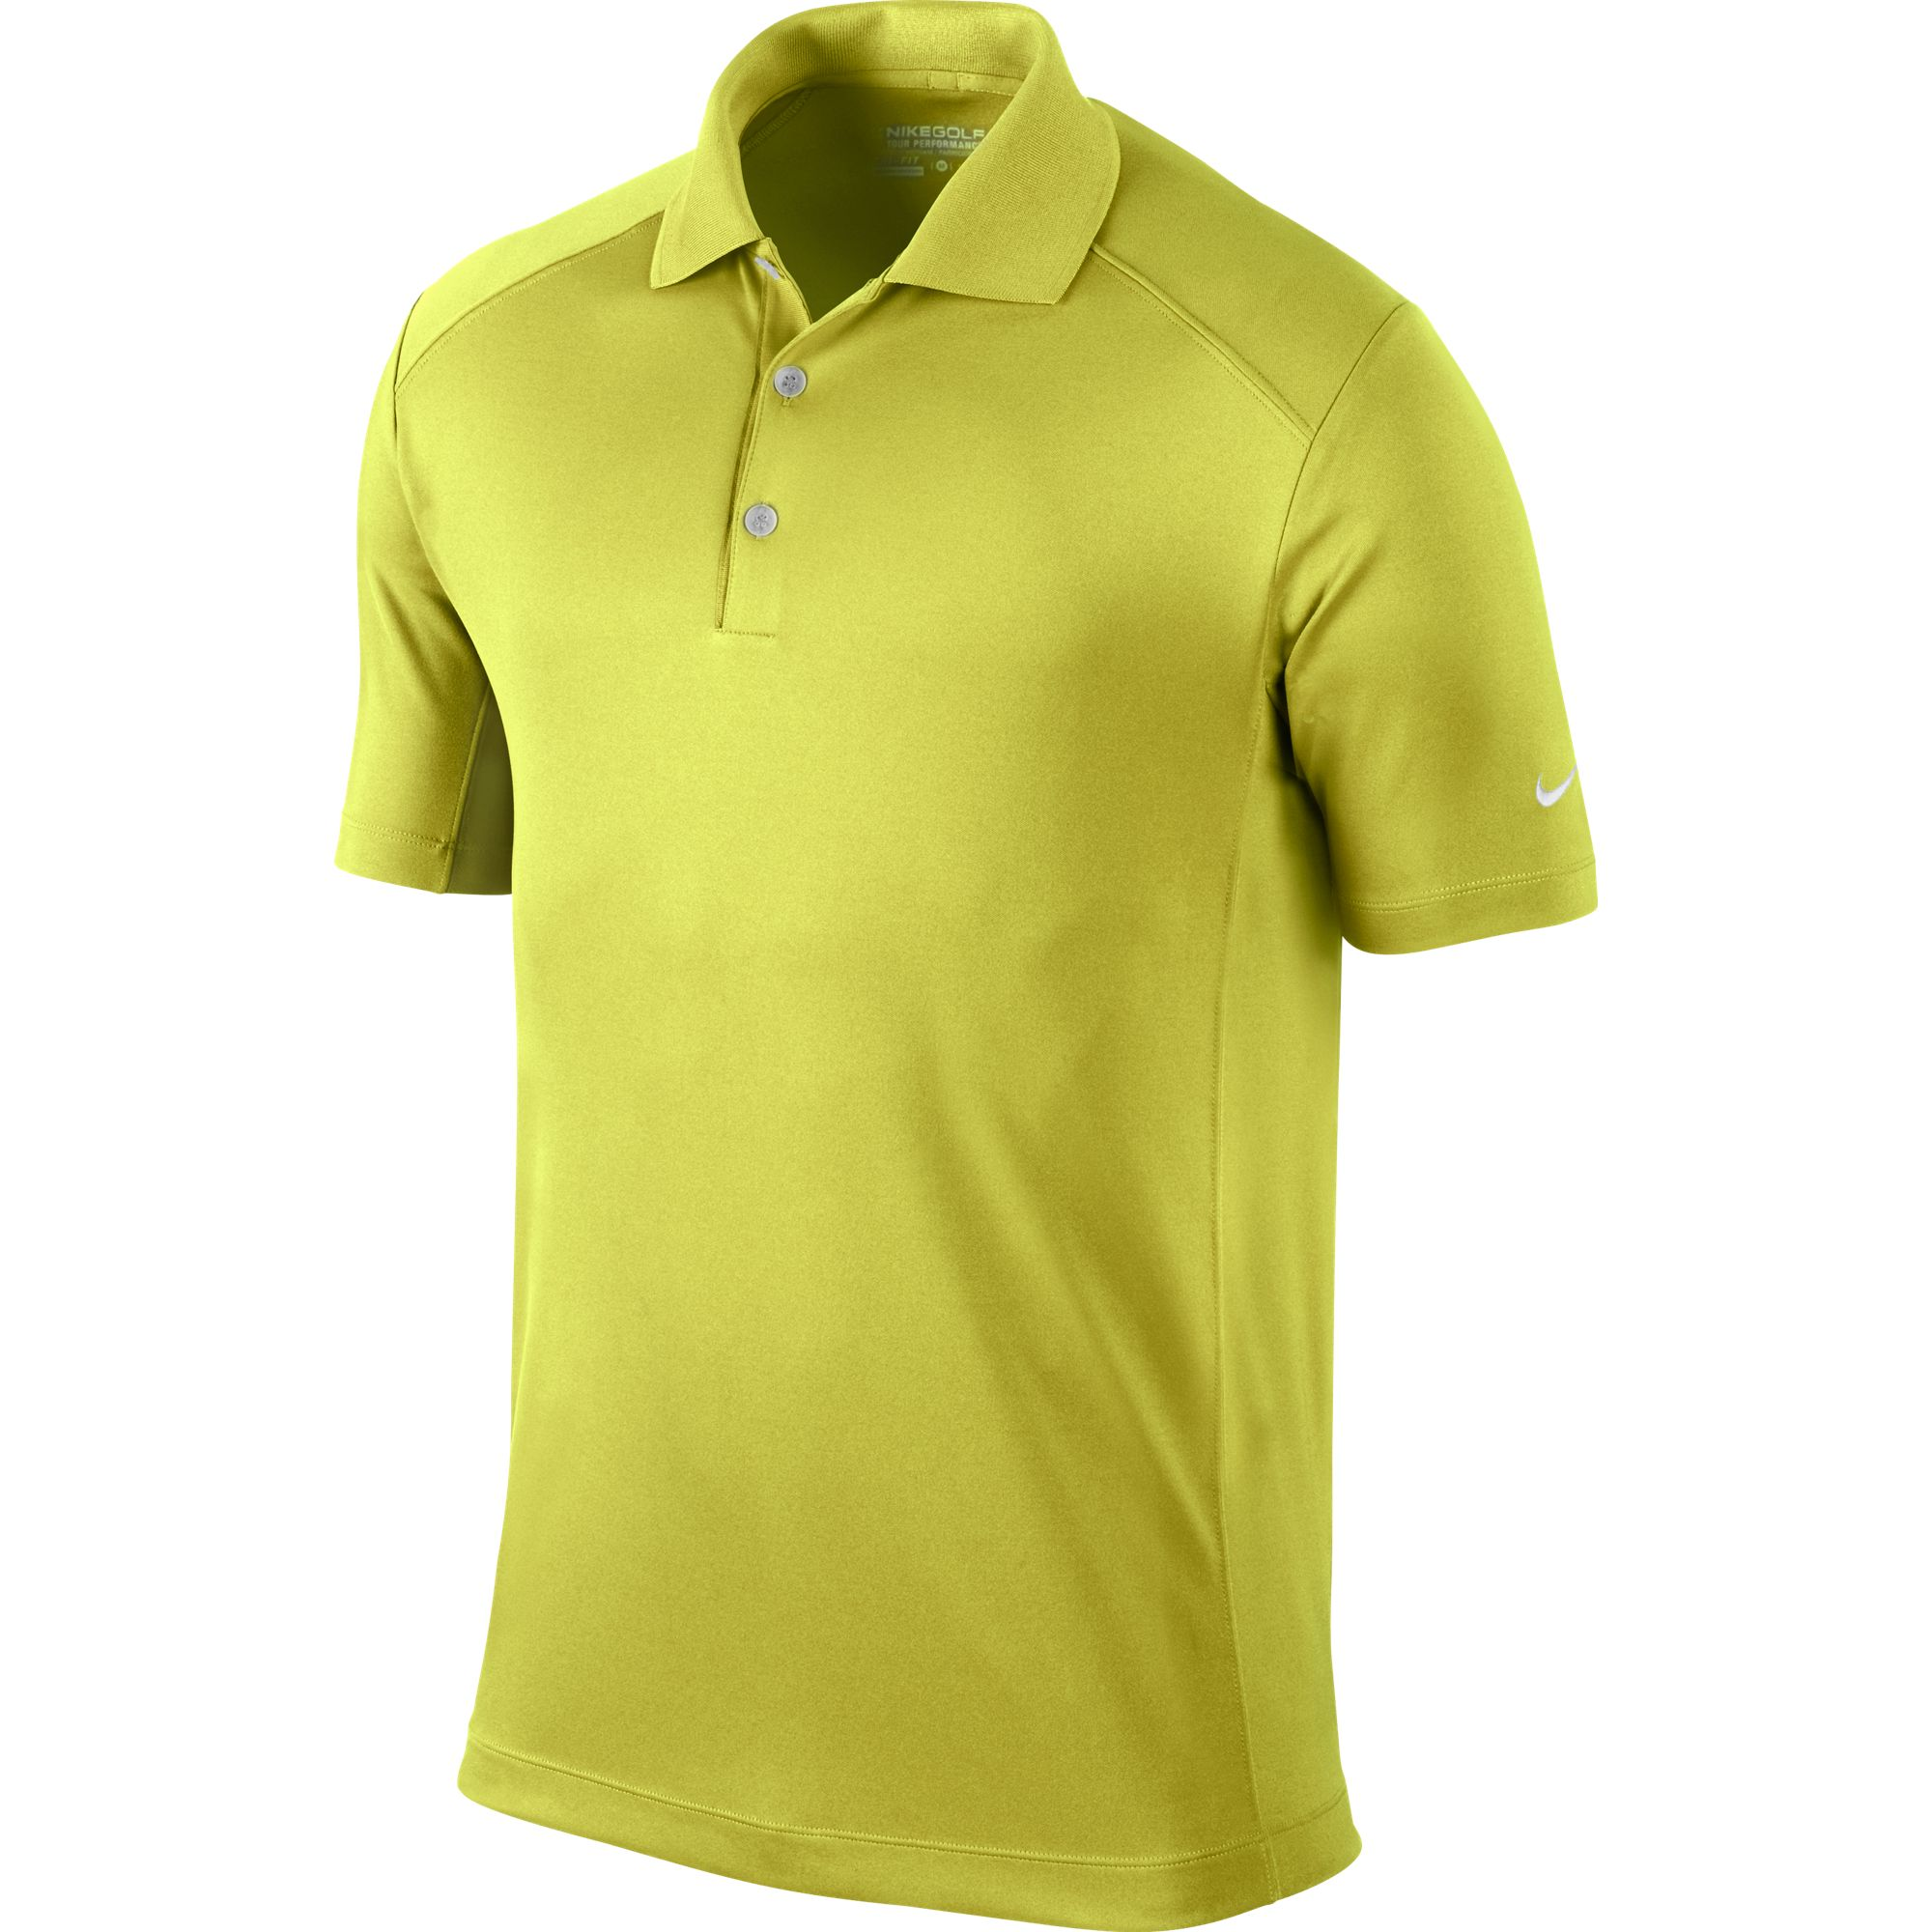 Men's Victory Solid Polo Golf Shirt, Chartreuse, swatch